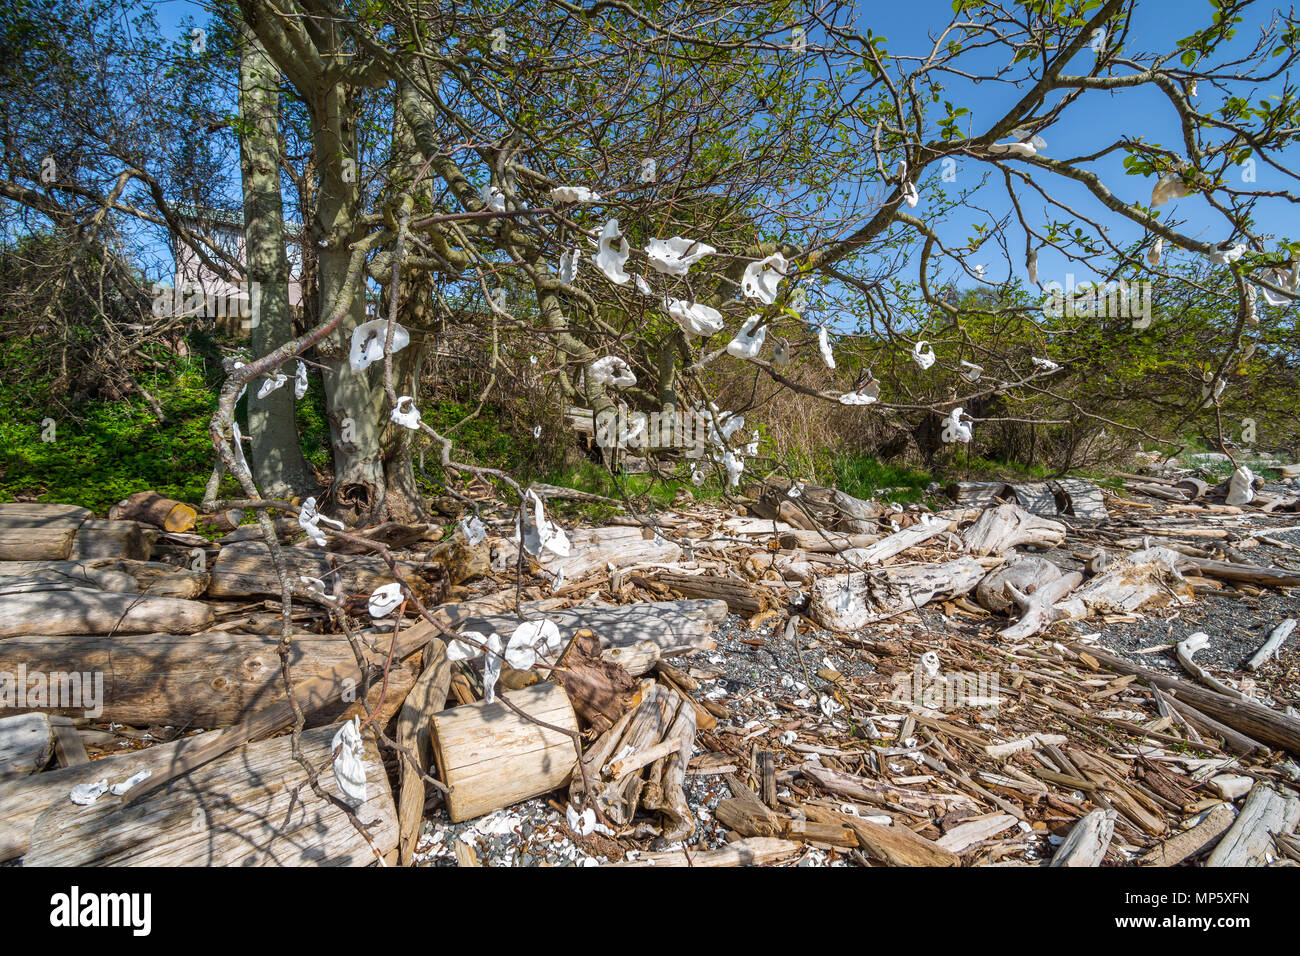 Oyster shells hung on tree branches, Sandpiper beach, Hornby Island, BC, Canada. - Stock Image